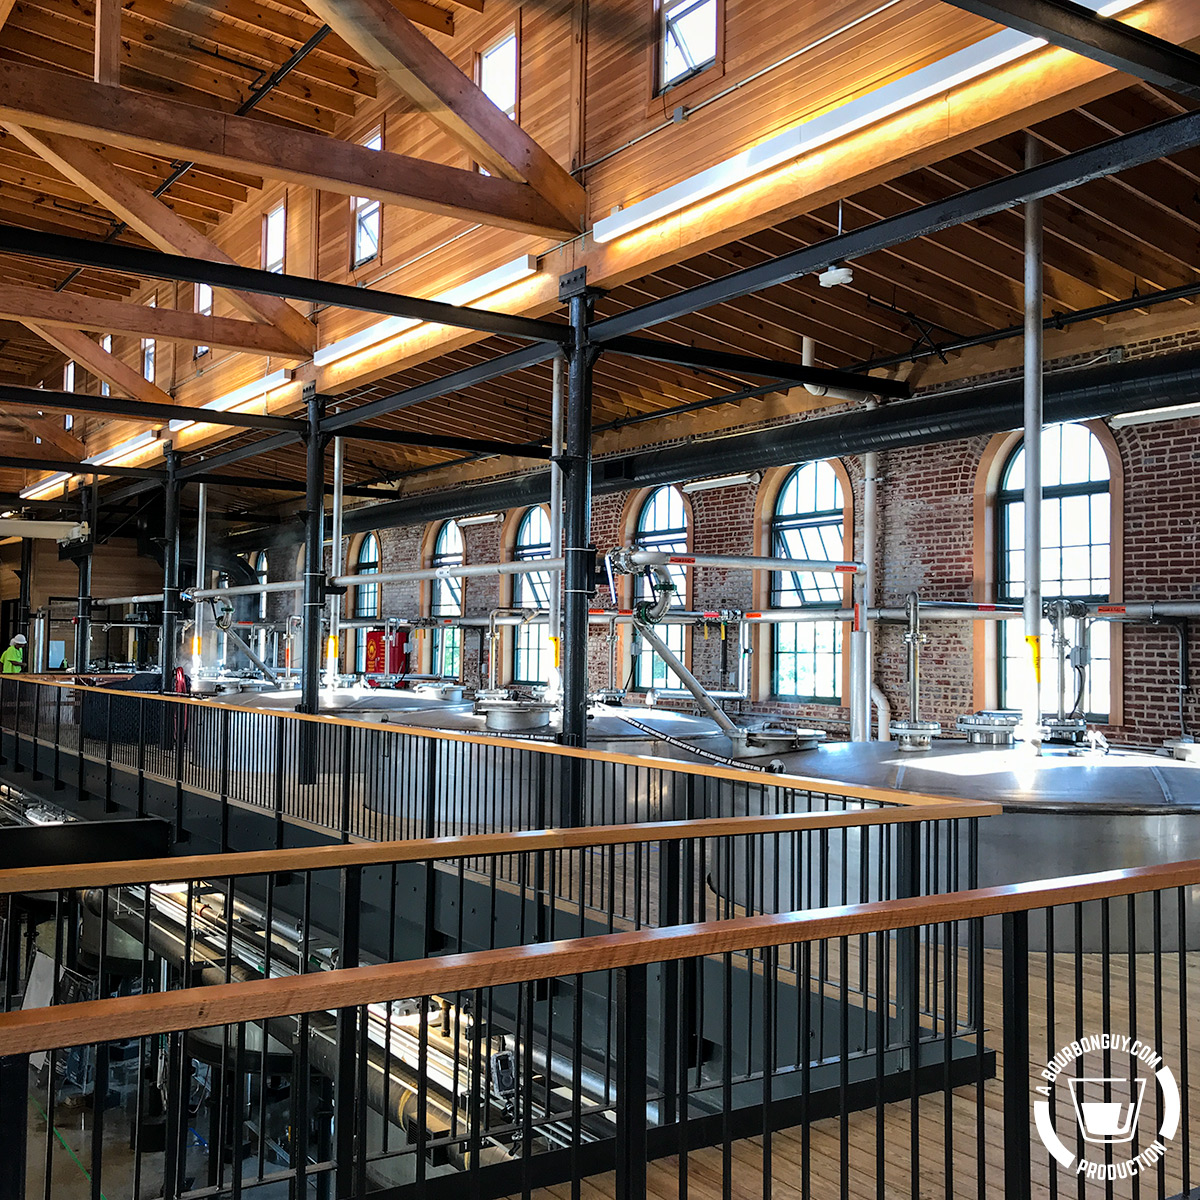 IMAGE: The Angel's Envy Distillery Fermenters. Wood and metal railings with closed fermenters in the background